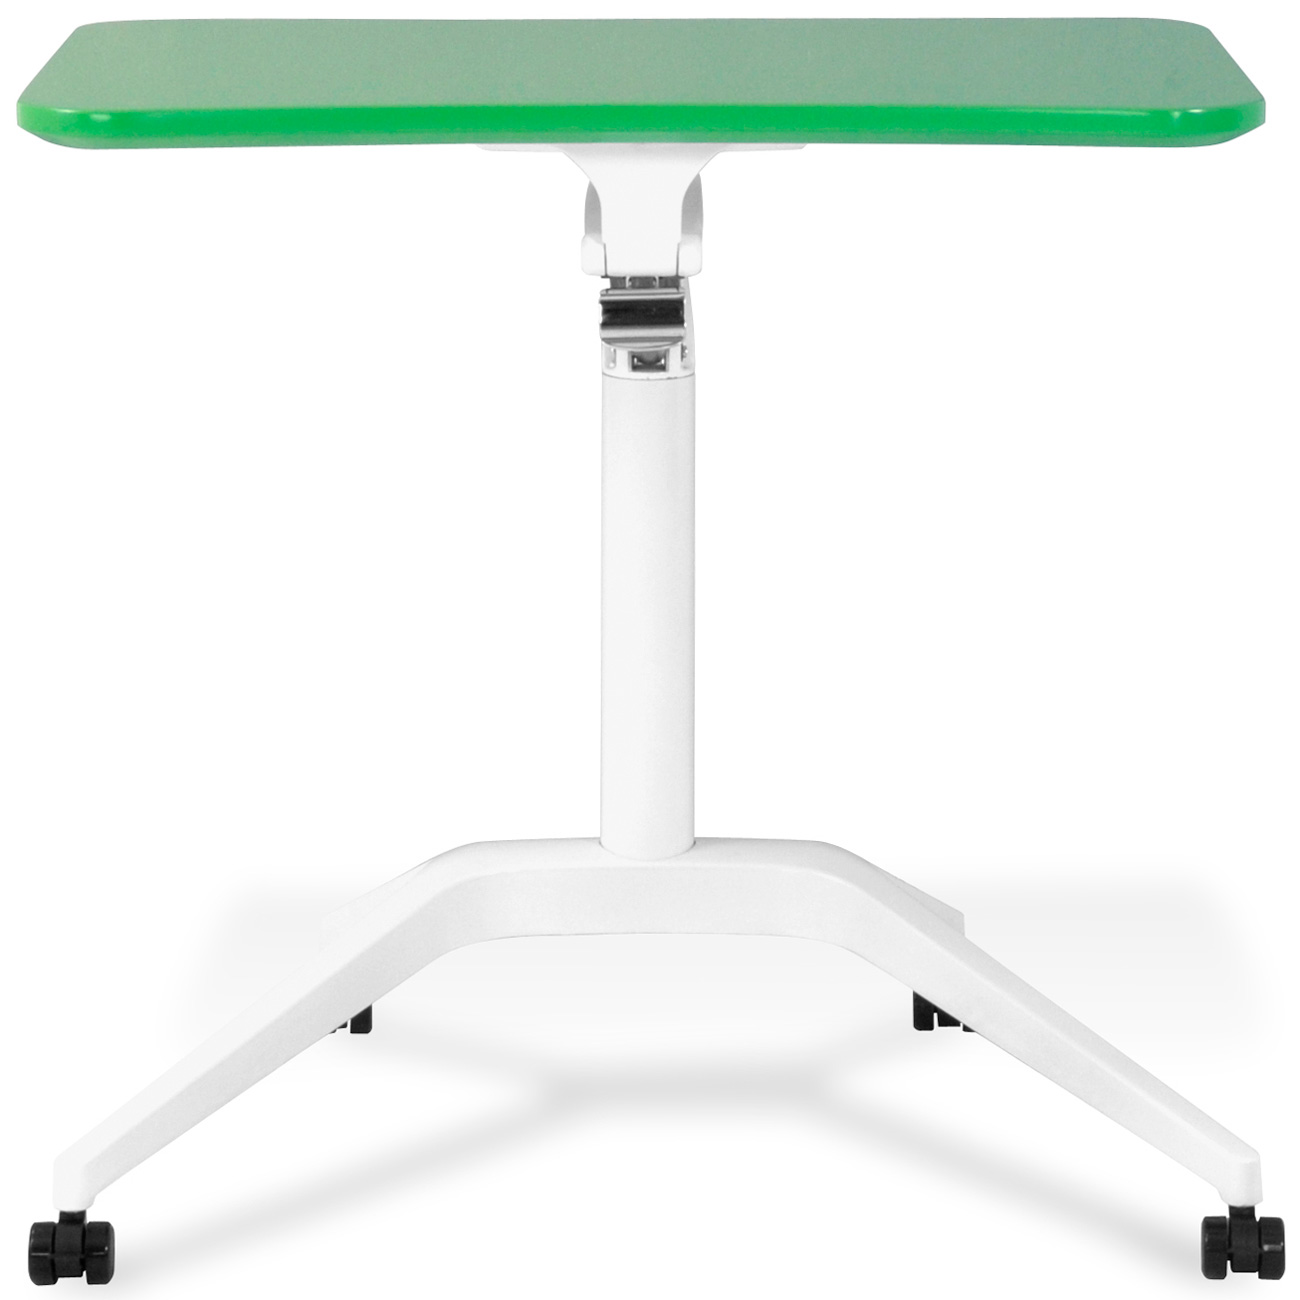 Mobile Laptop Table - Adjustable Height, Green - UNIQ-X201-GRE